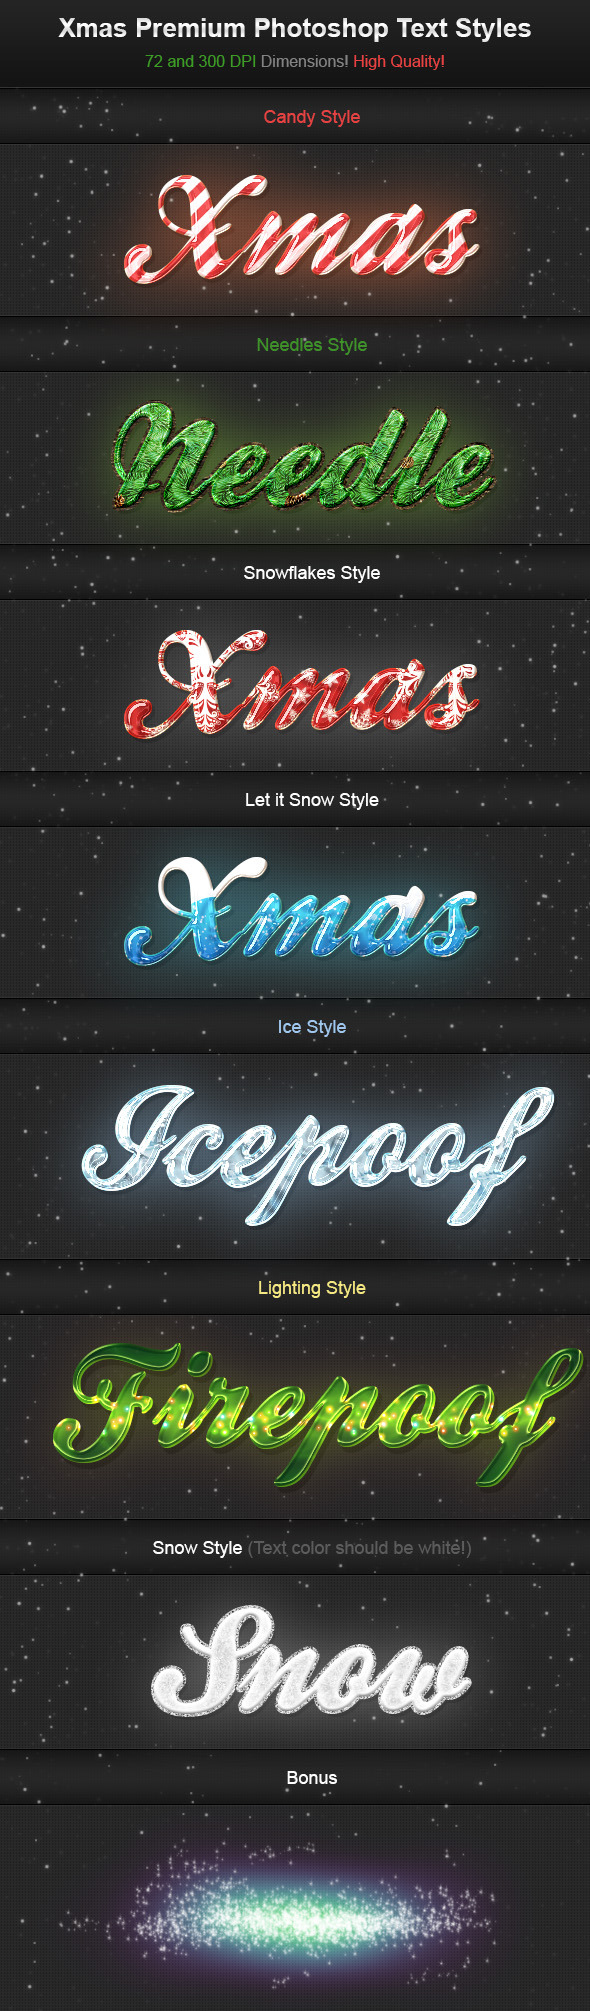 Xmas Premium Photoshop Text Styles - Text Effects Actions